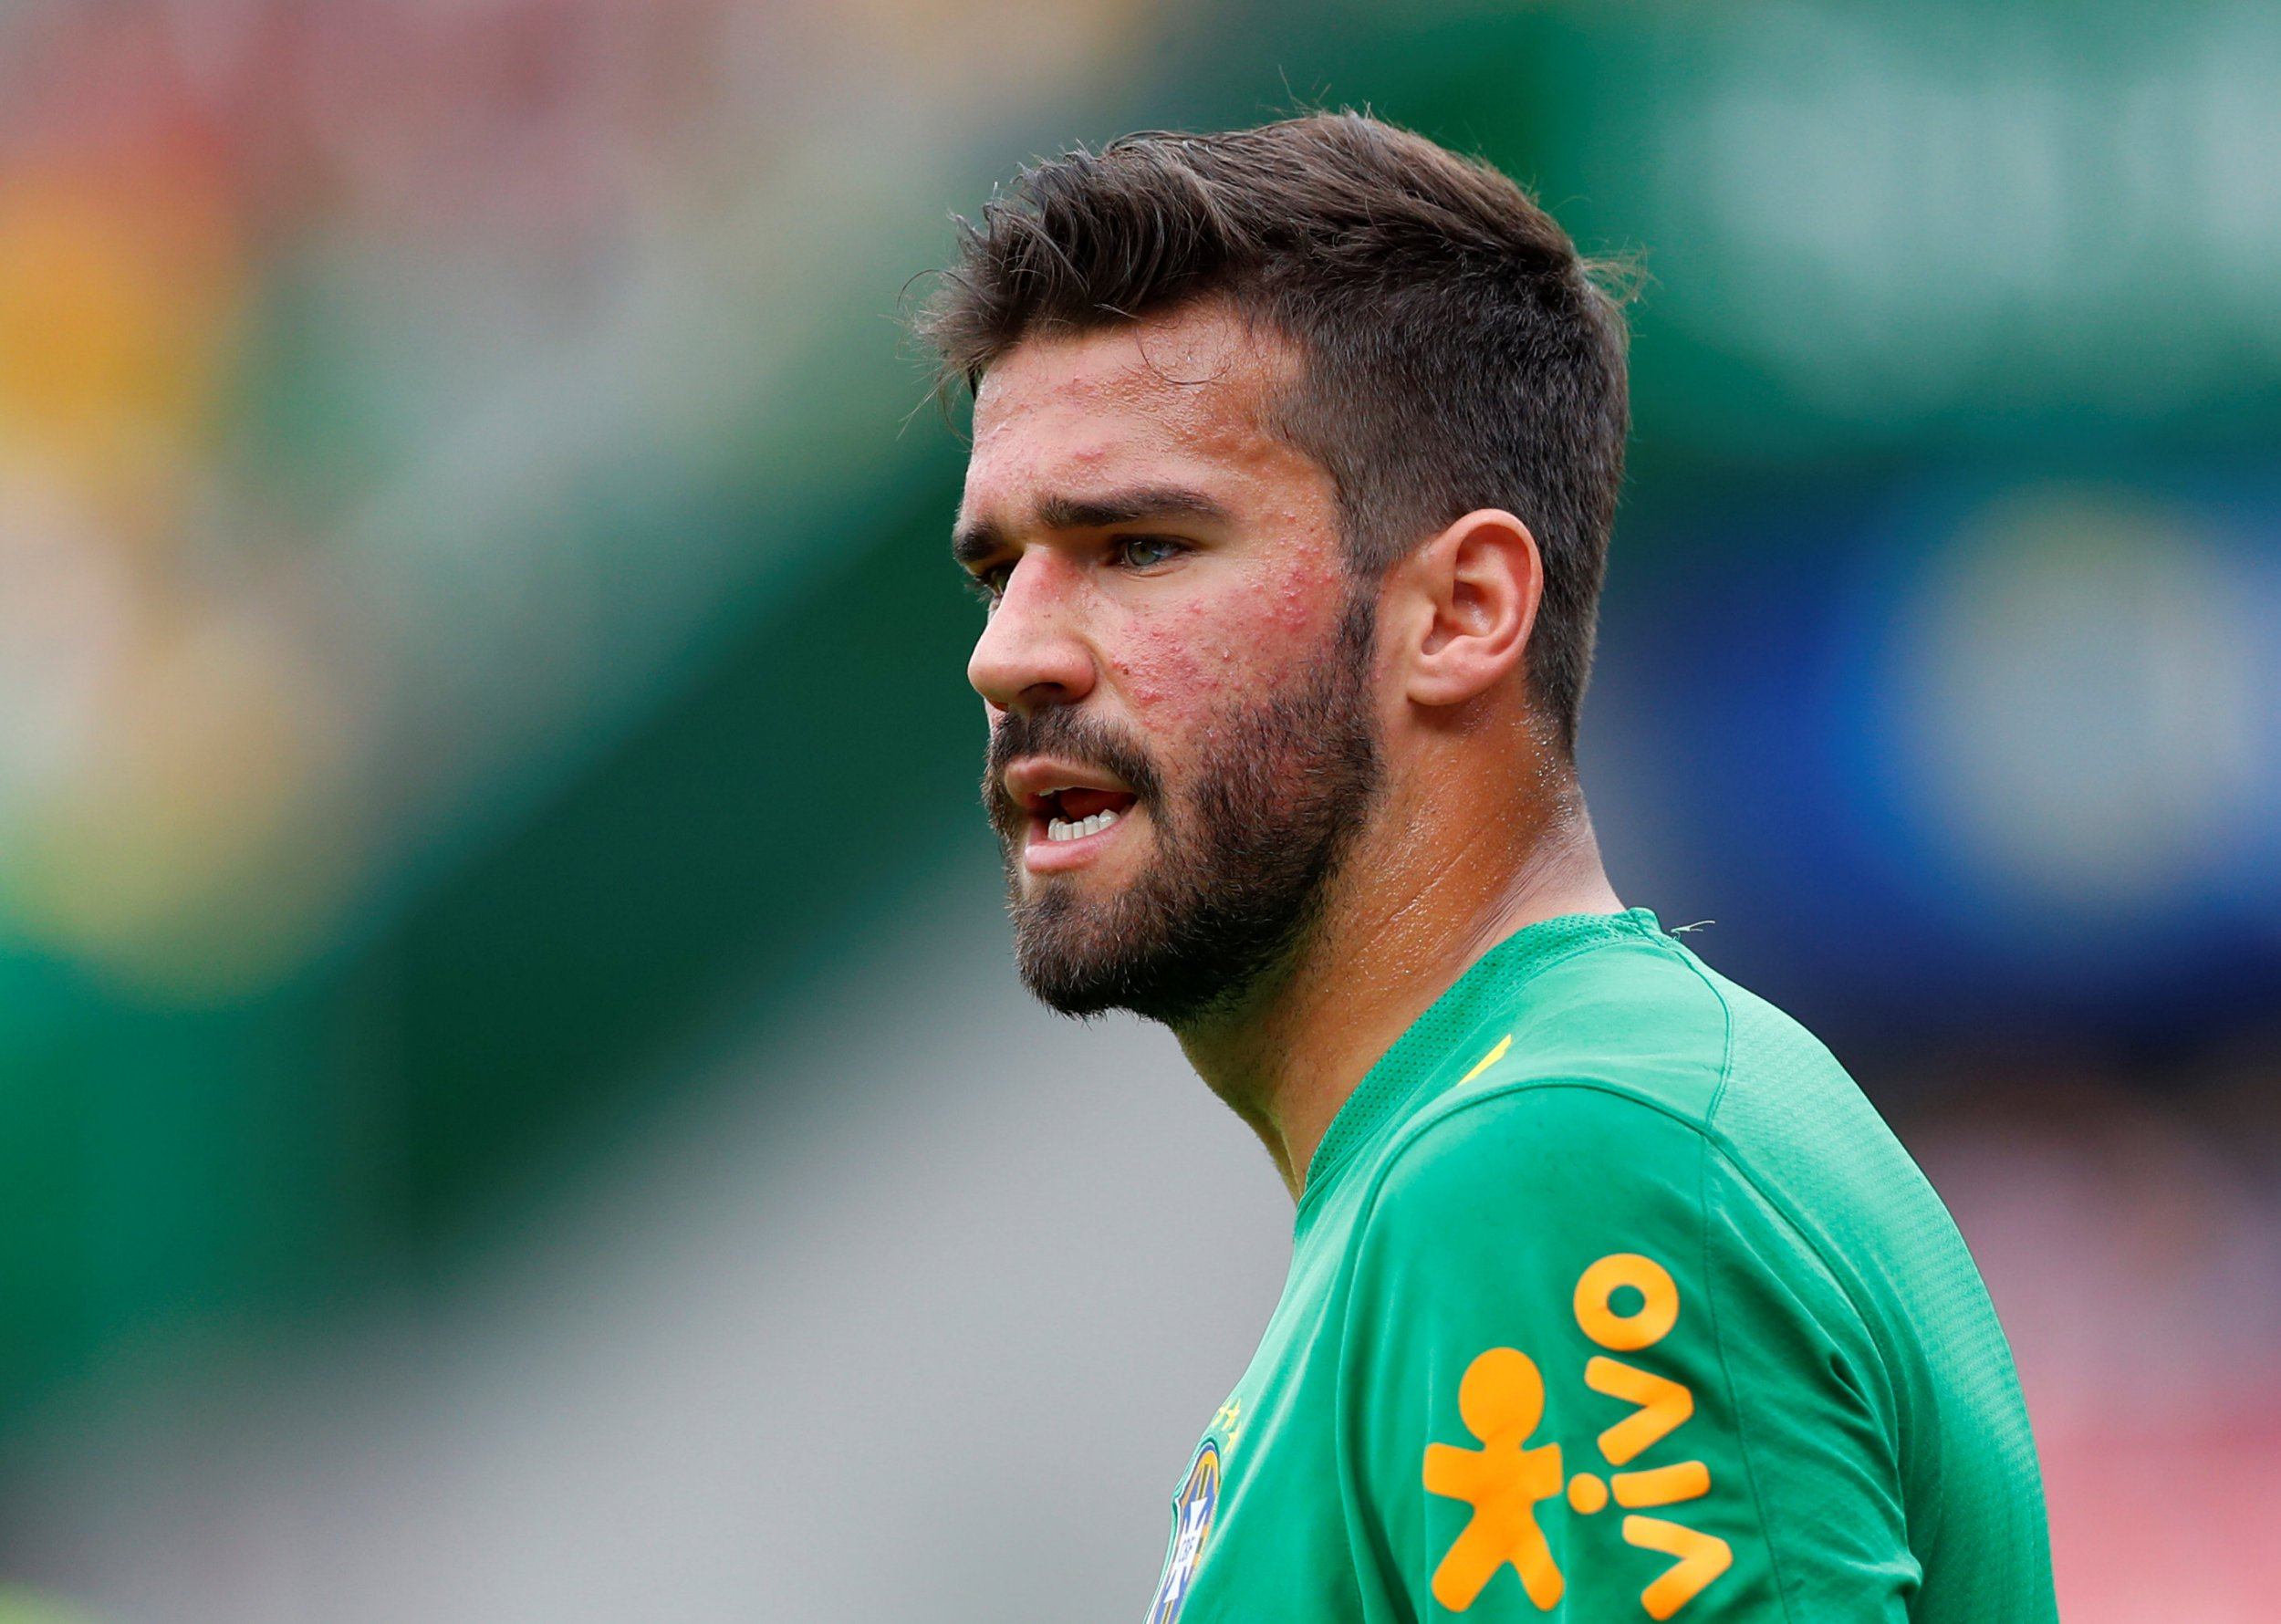 Liverpool suffer Alisson blow as Roma set to agree fee with Real Madrid over transfer instead